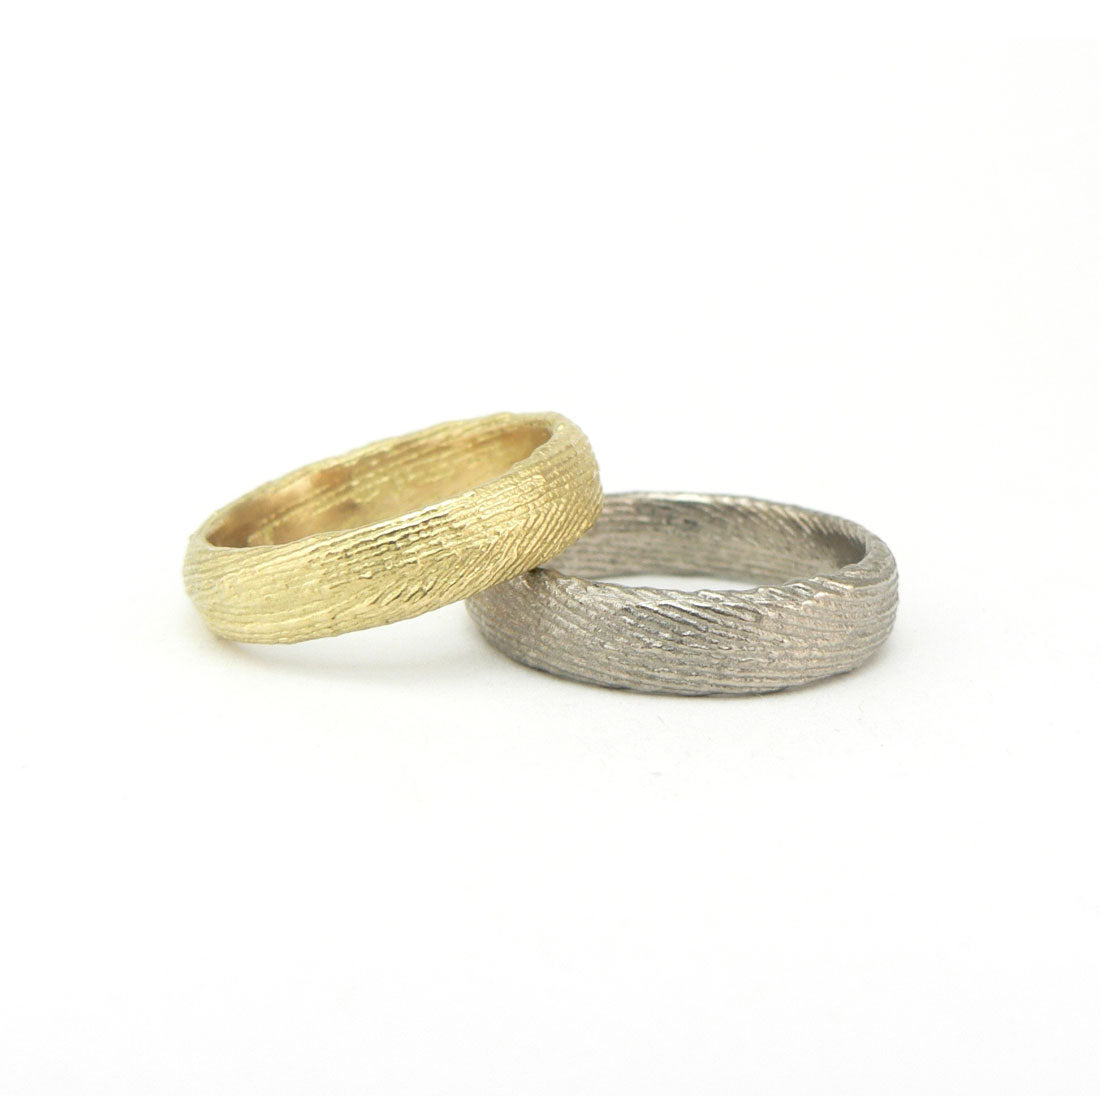 Cuttlefish cast textured wedding band white and yellow gold